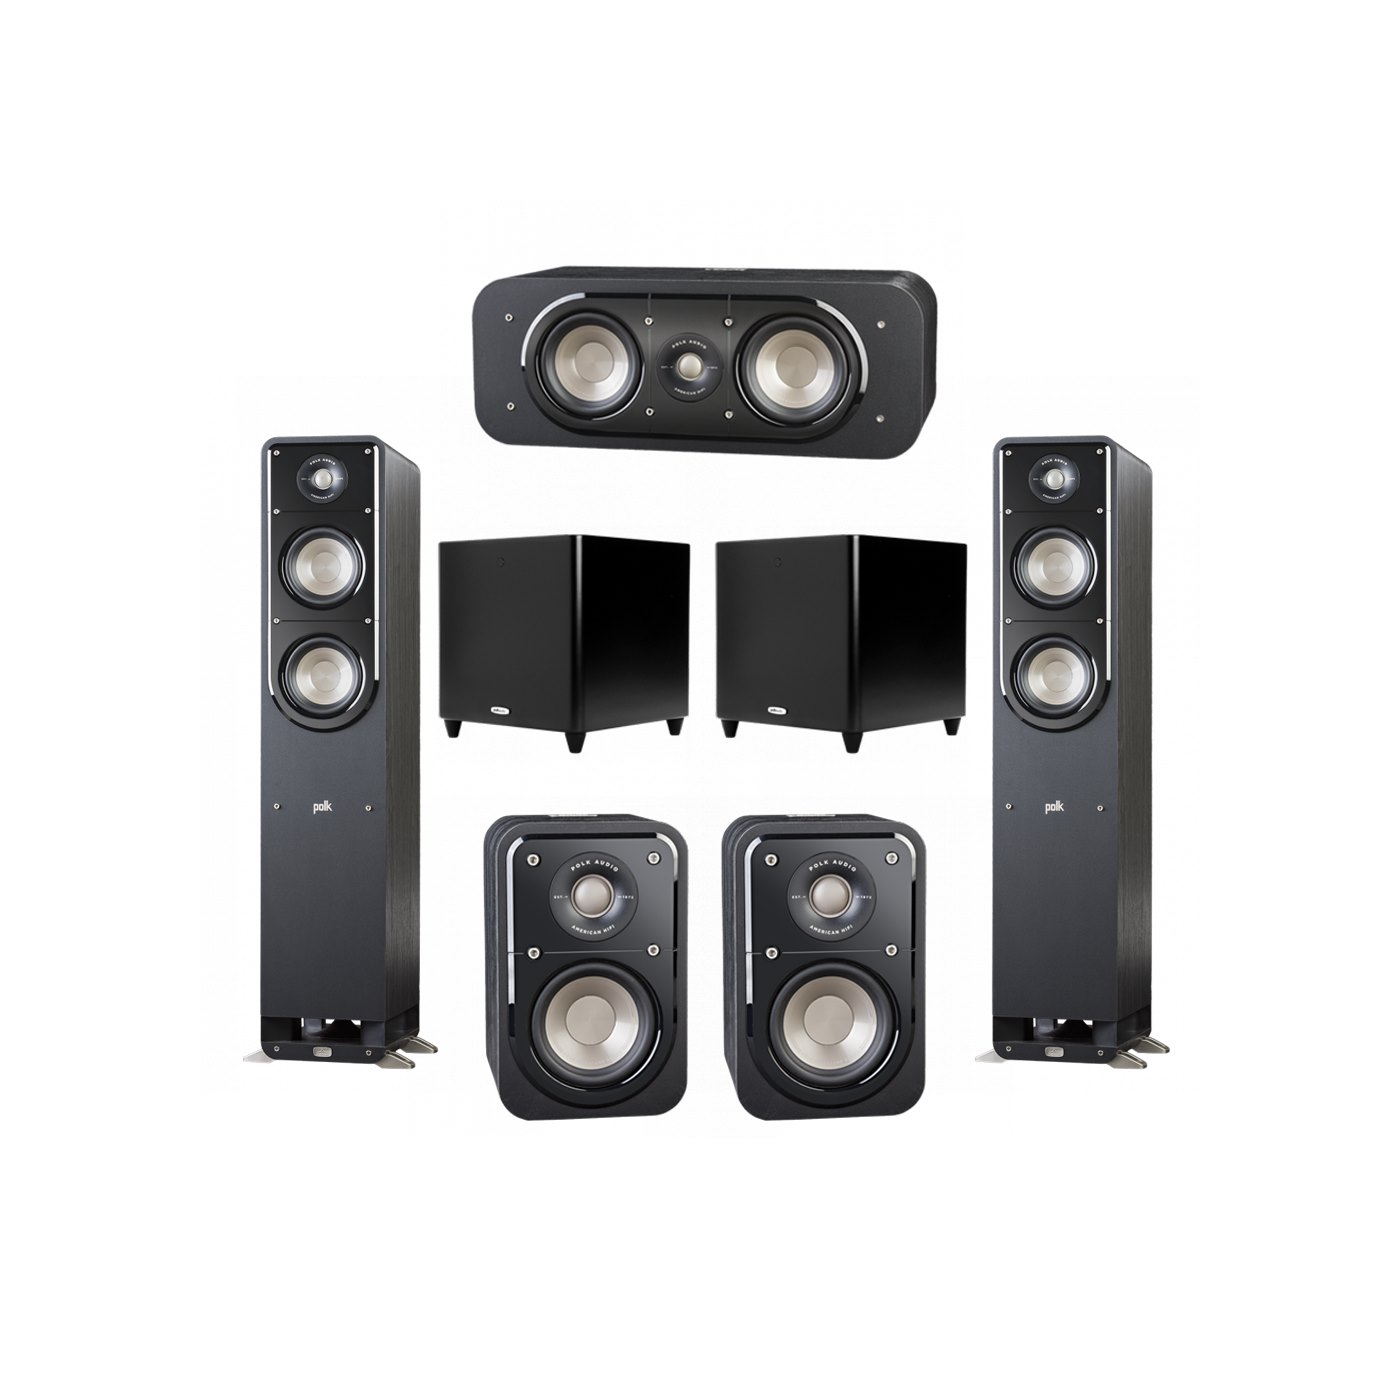 Polk Audio Signature 5.2 System with 2 S50 Tower Speaker, 1 Polk S30 Center Speaker, 2 Polk S10 Surround Speaker, 2 Polk DSW PRO 660 wi Subwoofer